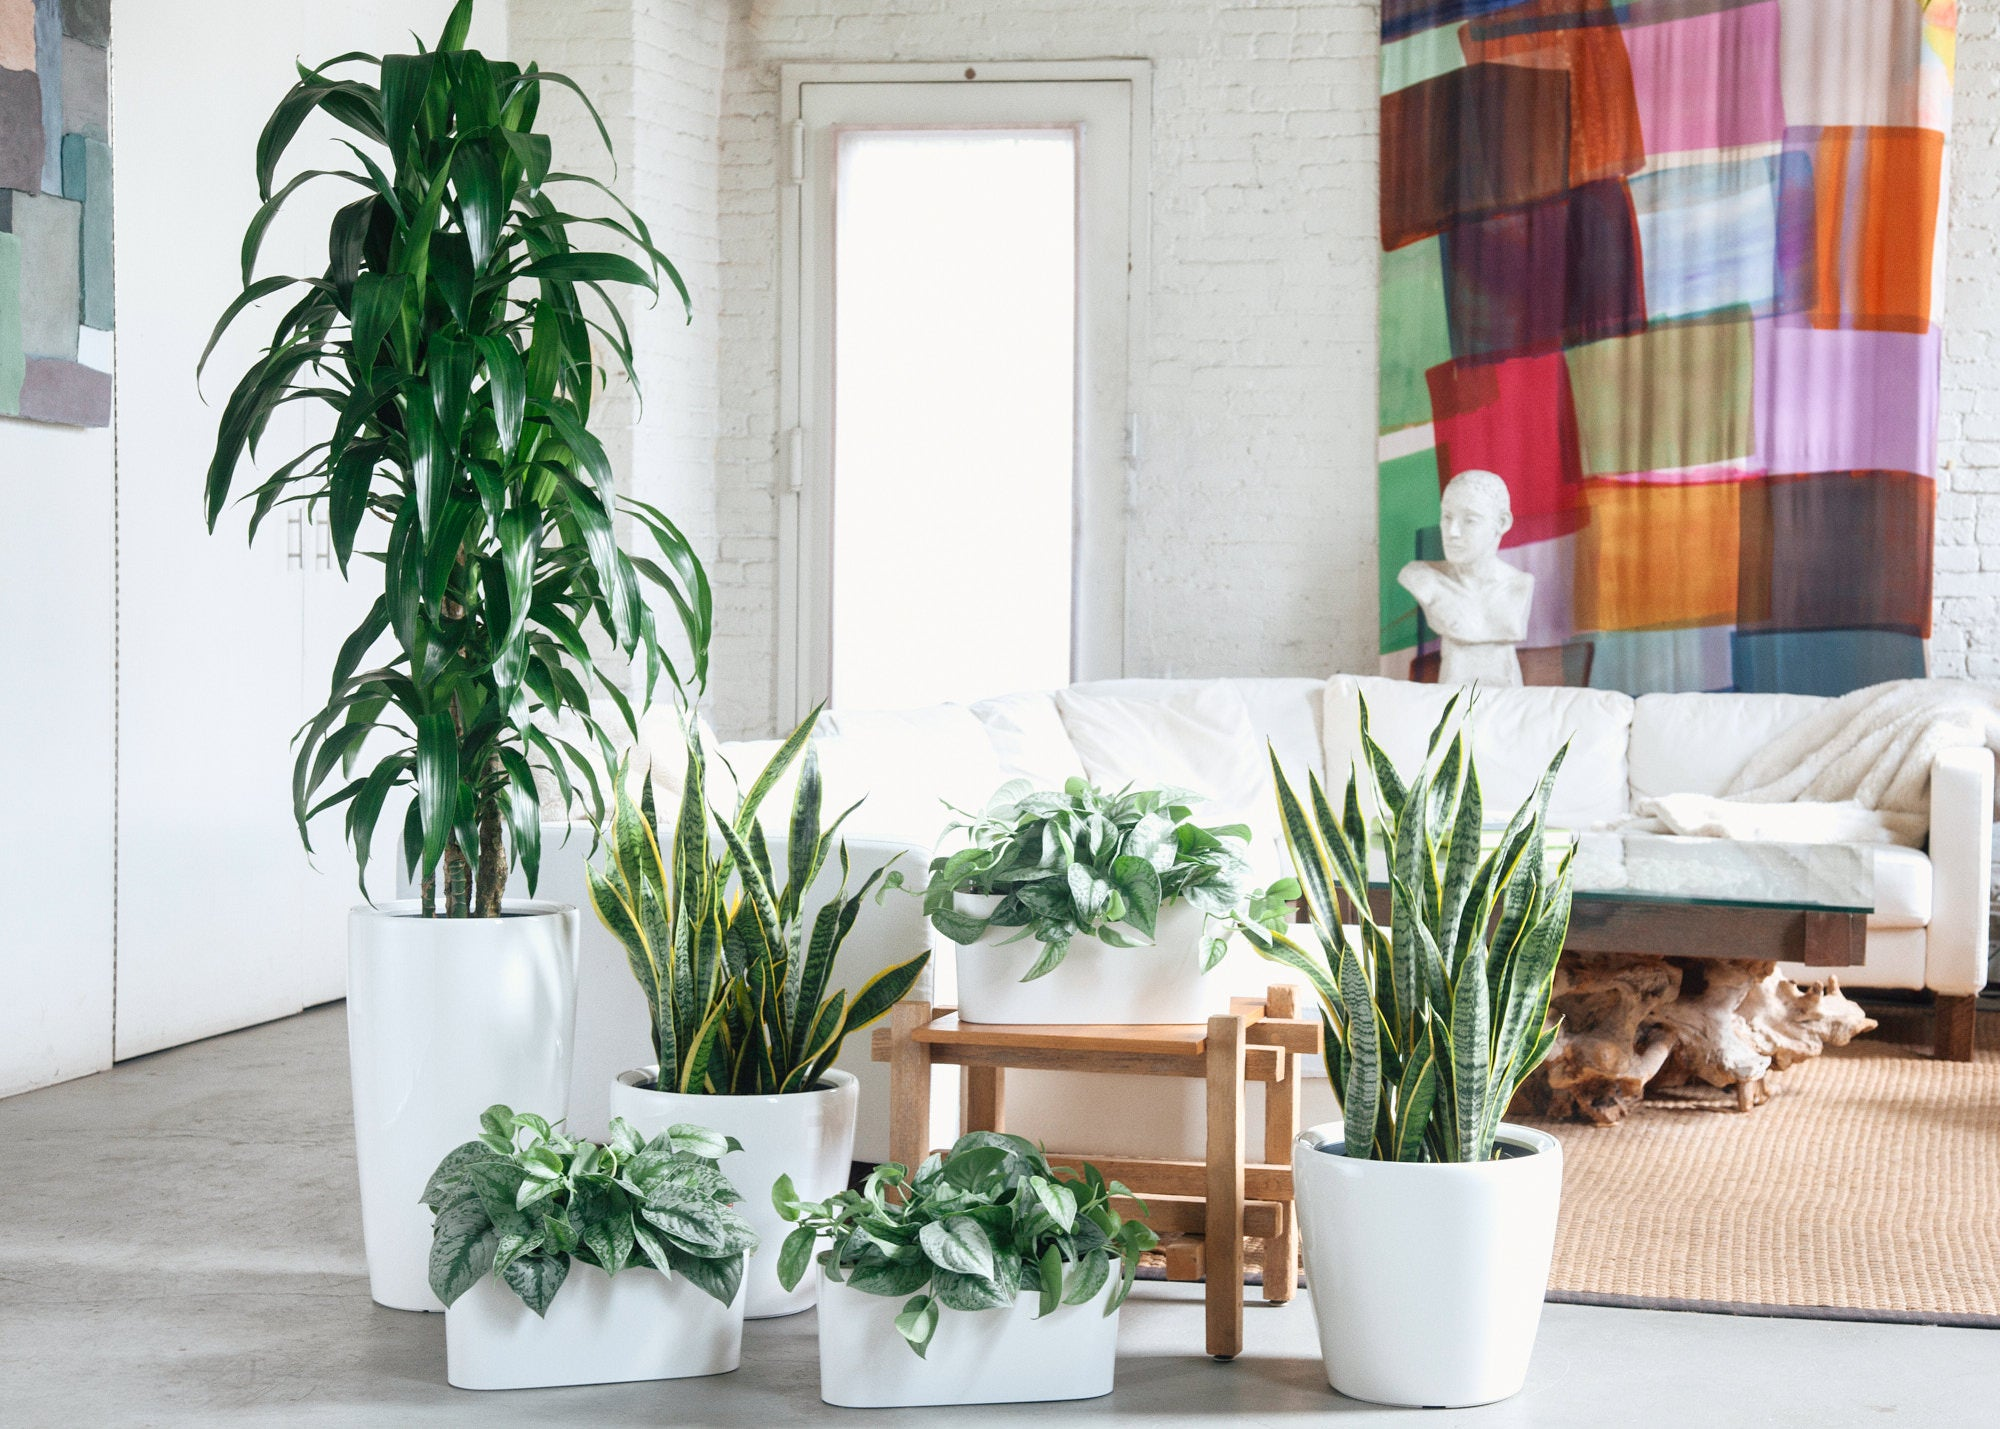 Houseplant Delivery NYC  & NJ - My City Plants